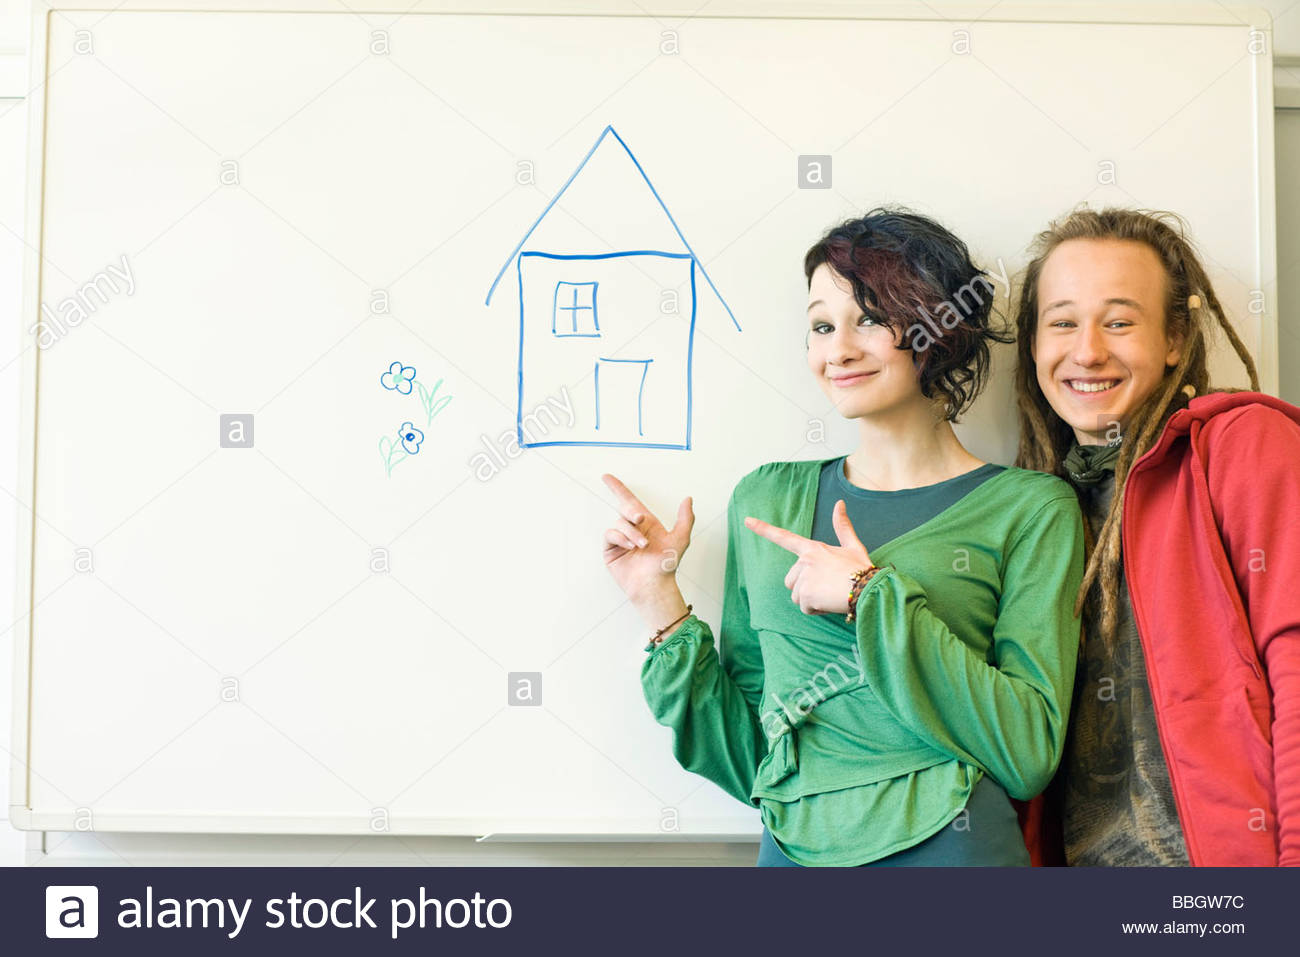 Two teenagers smiling at one another before a drawing a house - Stock Image